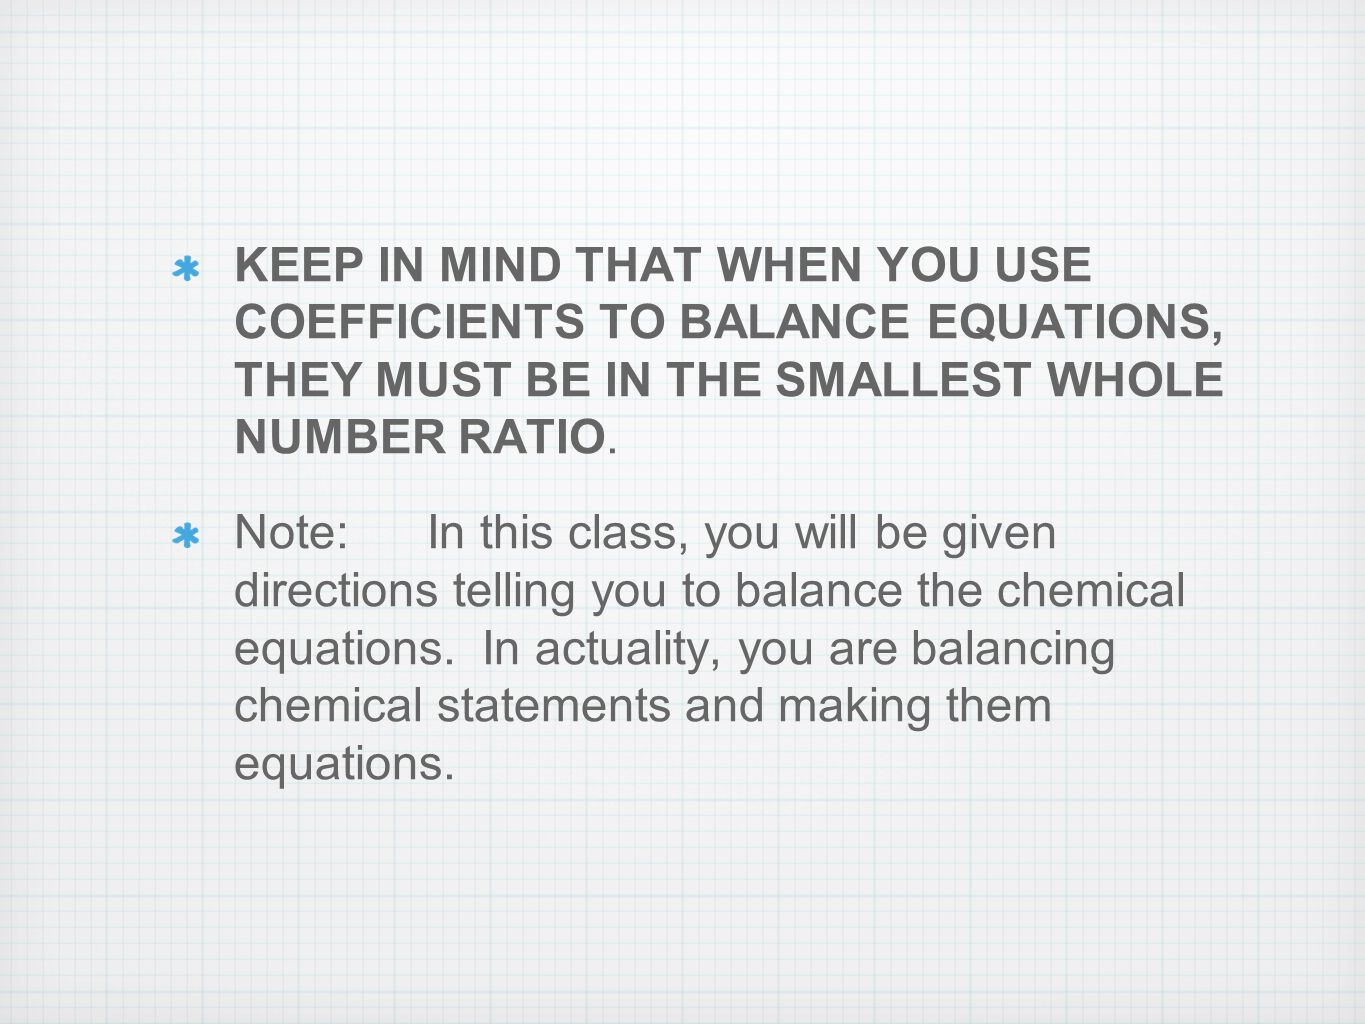 KEEP IN MIND THAT WHEN YOU USE COEFFICIENTS TO BALANCE EQUATIONS, THEY MUST BE IN THE SMALLEST WHOLE NUMBER RATIO.